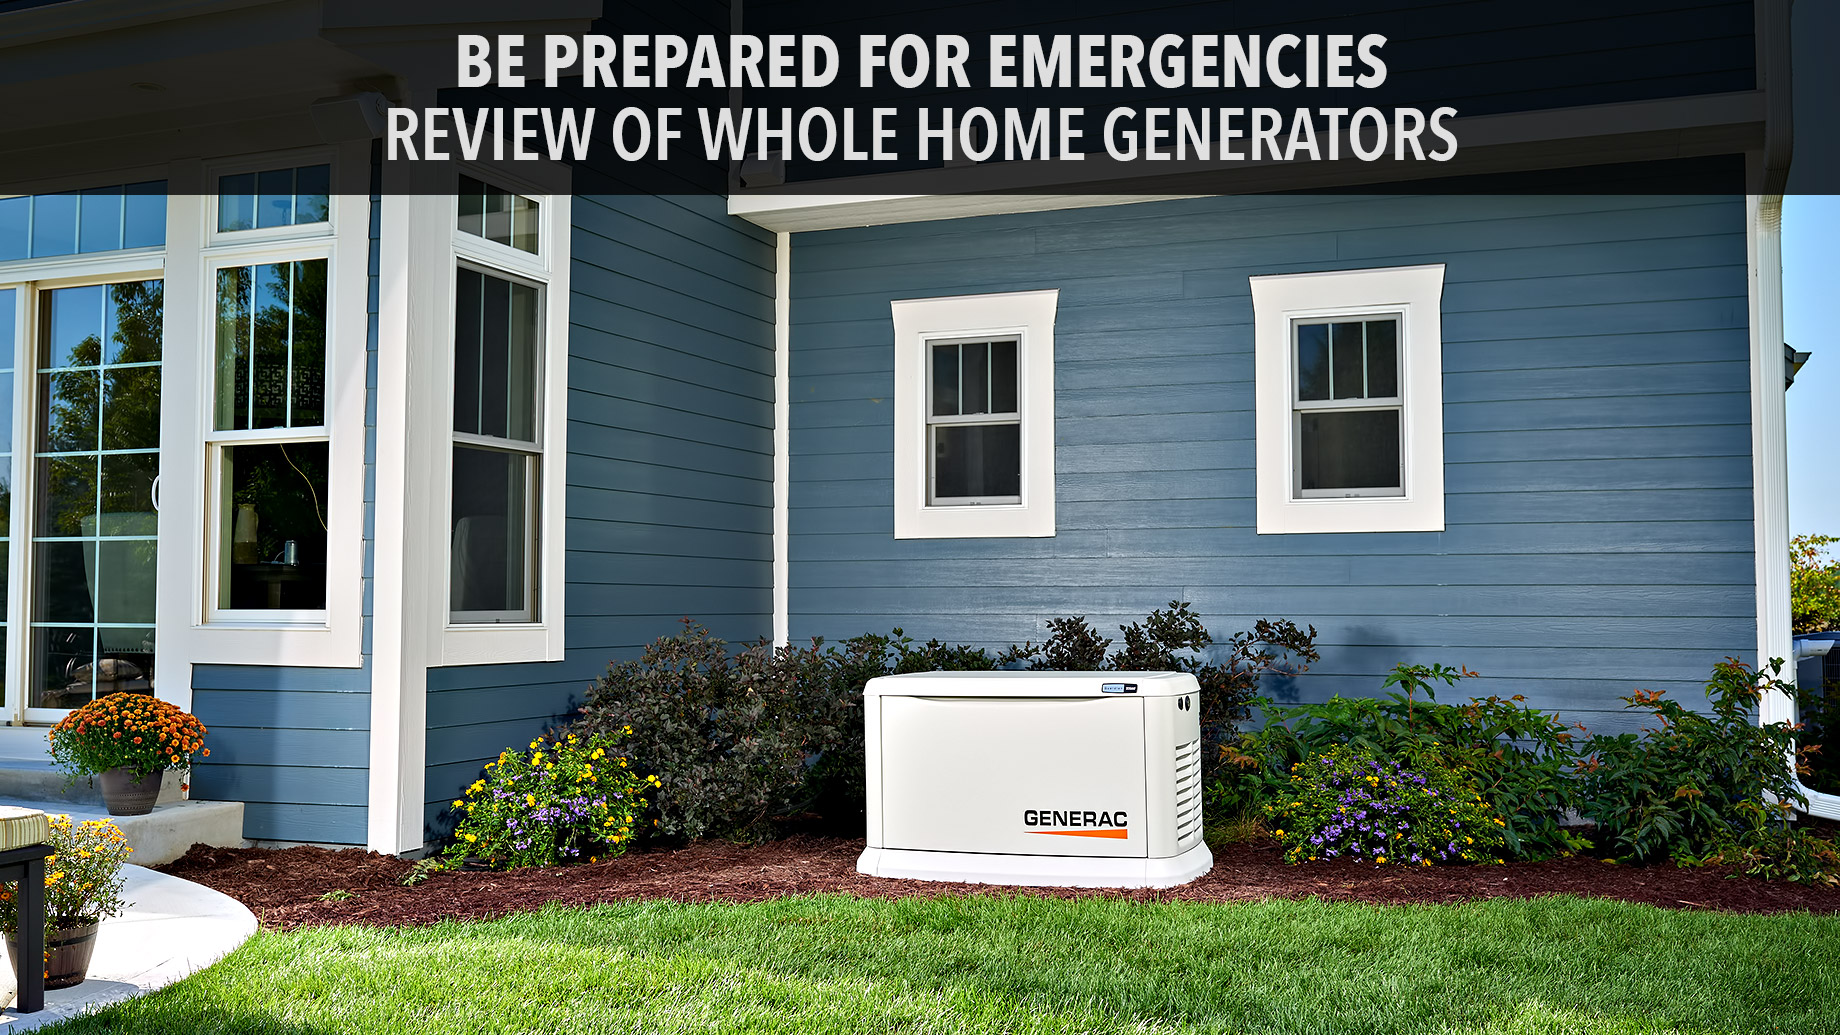 Be Prepared For Emergencies - Review of Whole Home Generators